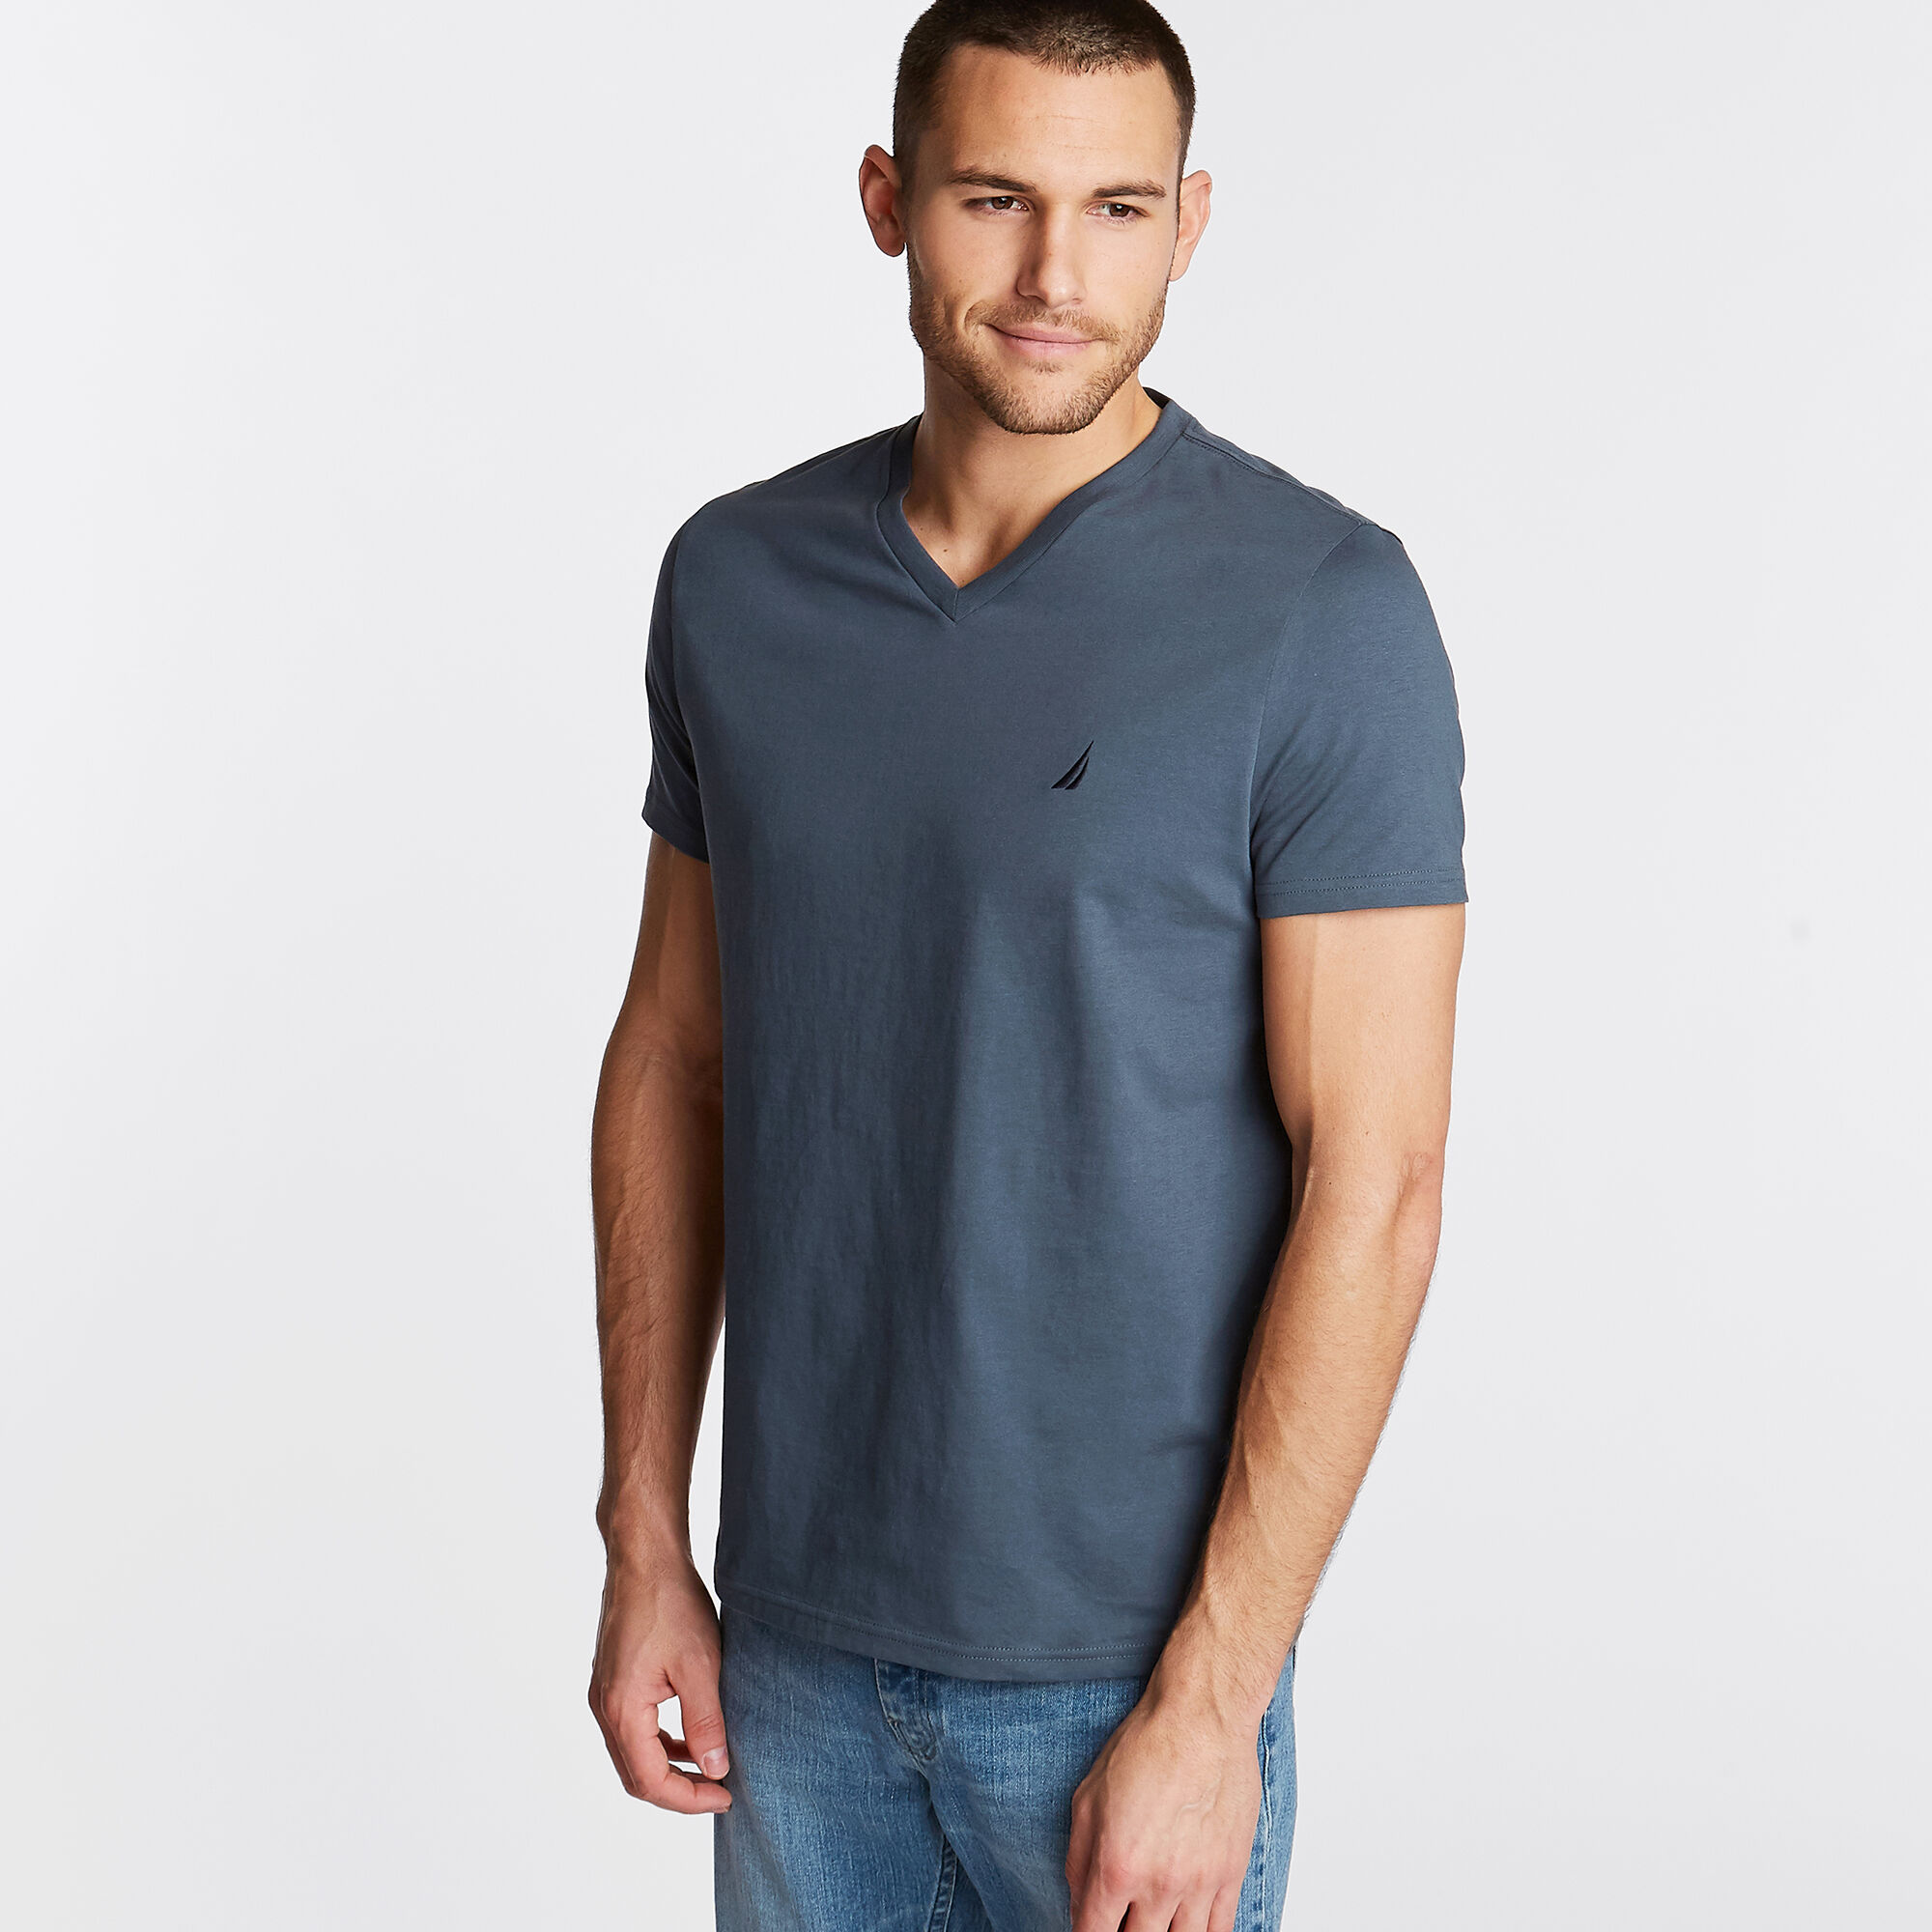 Nautica-Mens-V-Neck-Short-Sleeve-T-Shirt thumbnail 55